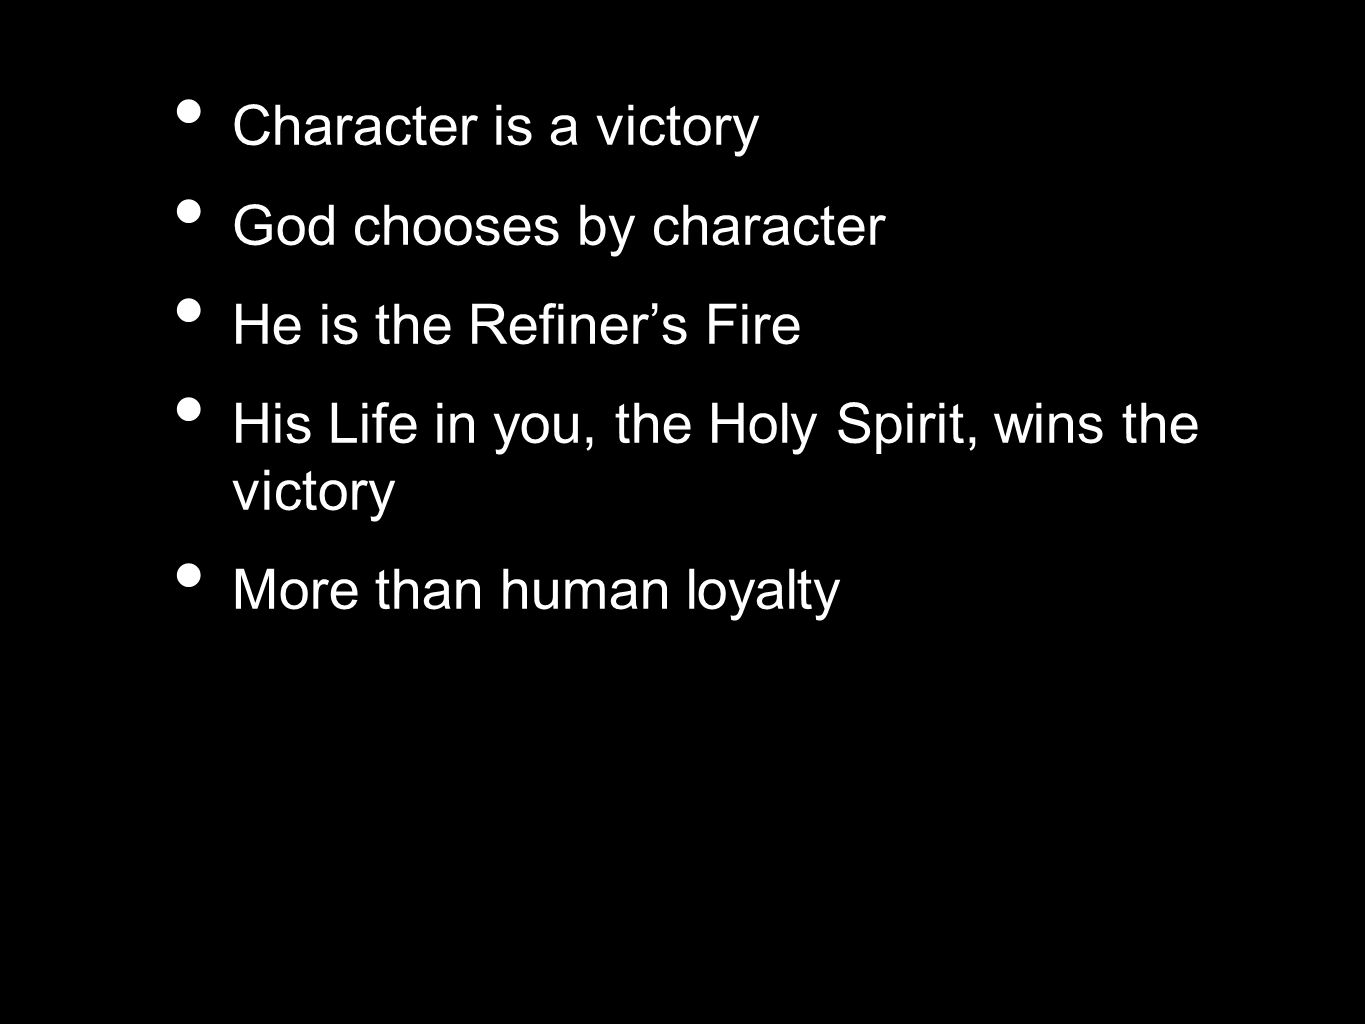 Character is a victory God chooses by character He is the Refiner's Fire His Life in you, the Holy Spirit, wins the victory More than human loyalty